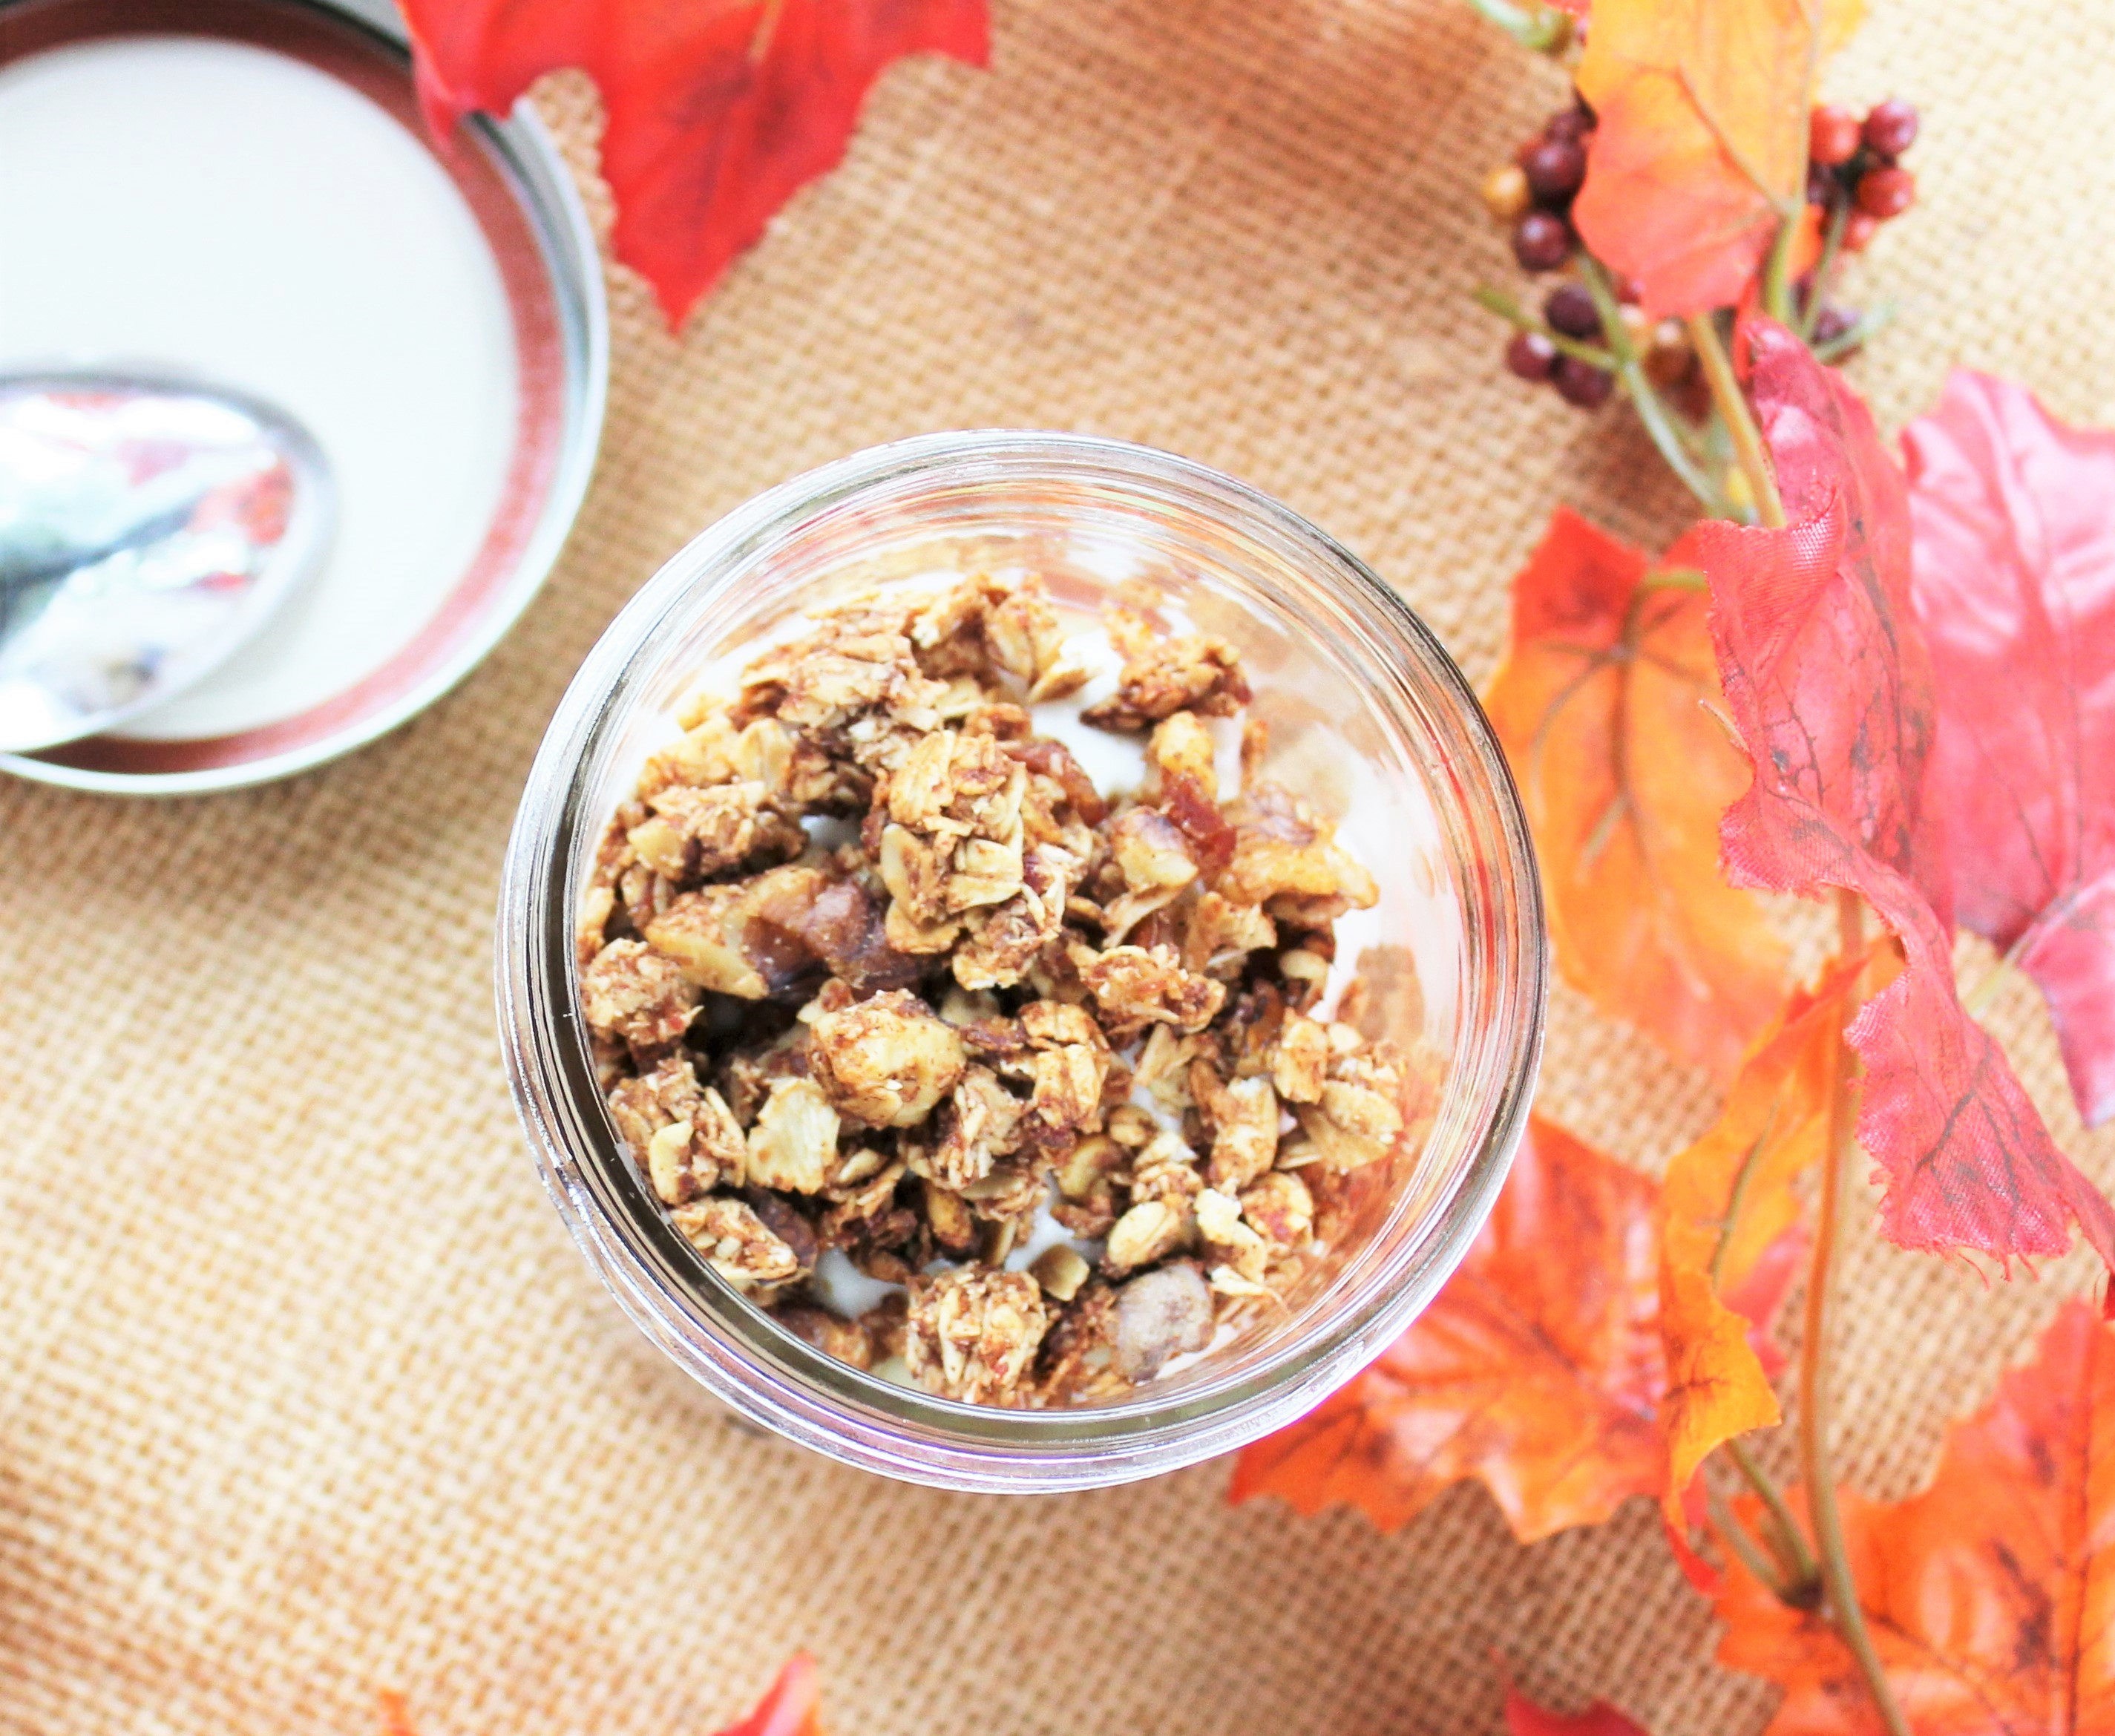 Yogurt Breakfast Parfait with Diced Apple and Homemade Cinnamon, Honey, and Walnut Granola 3